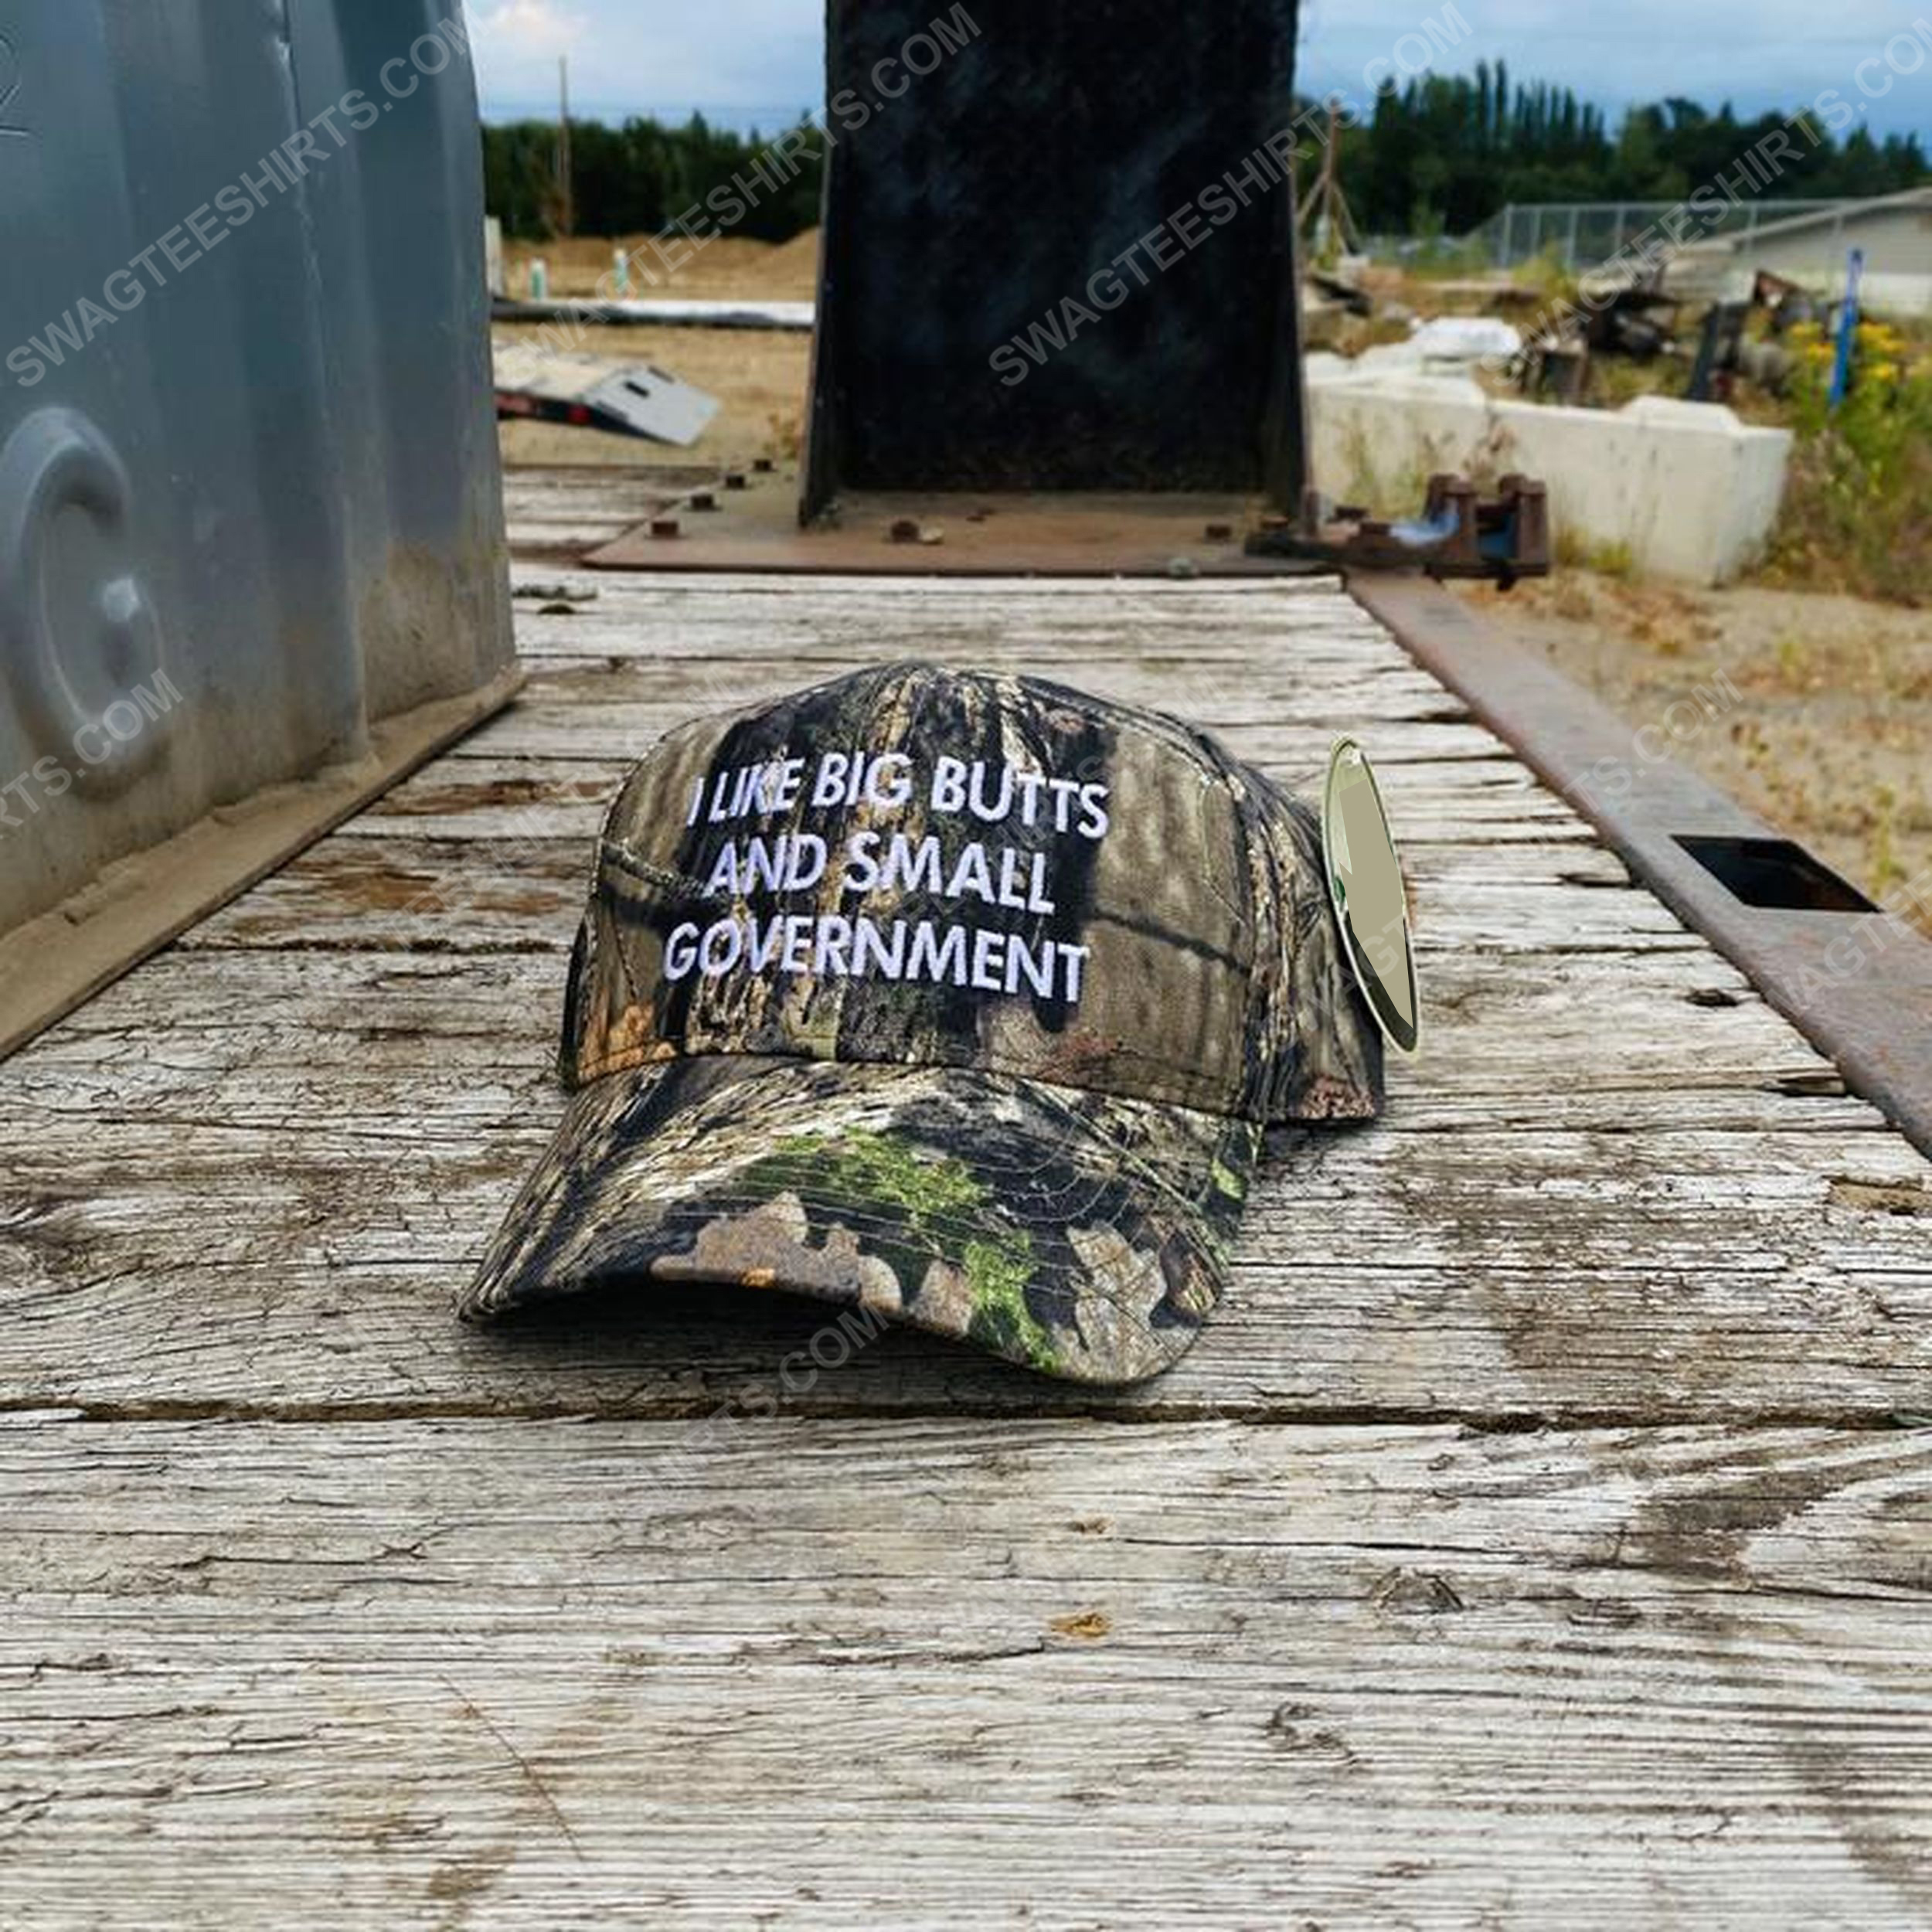 Camo i like big butts and small government full print classic hat 1 - Copy (2)